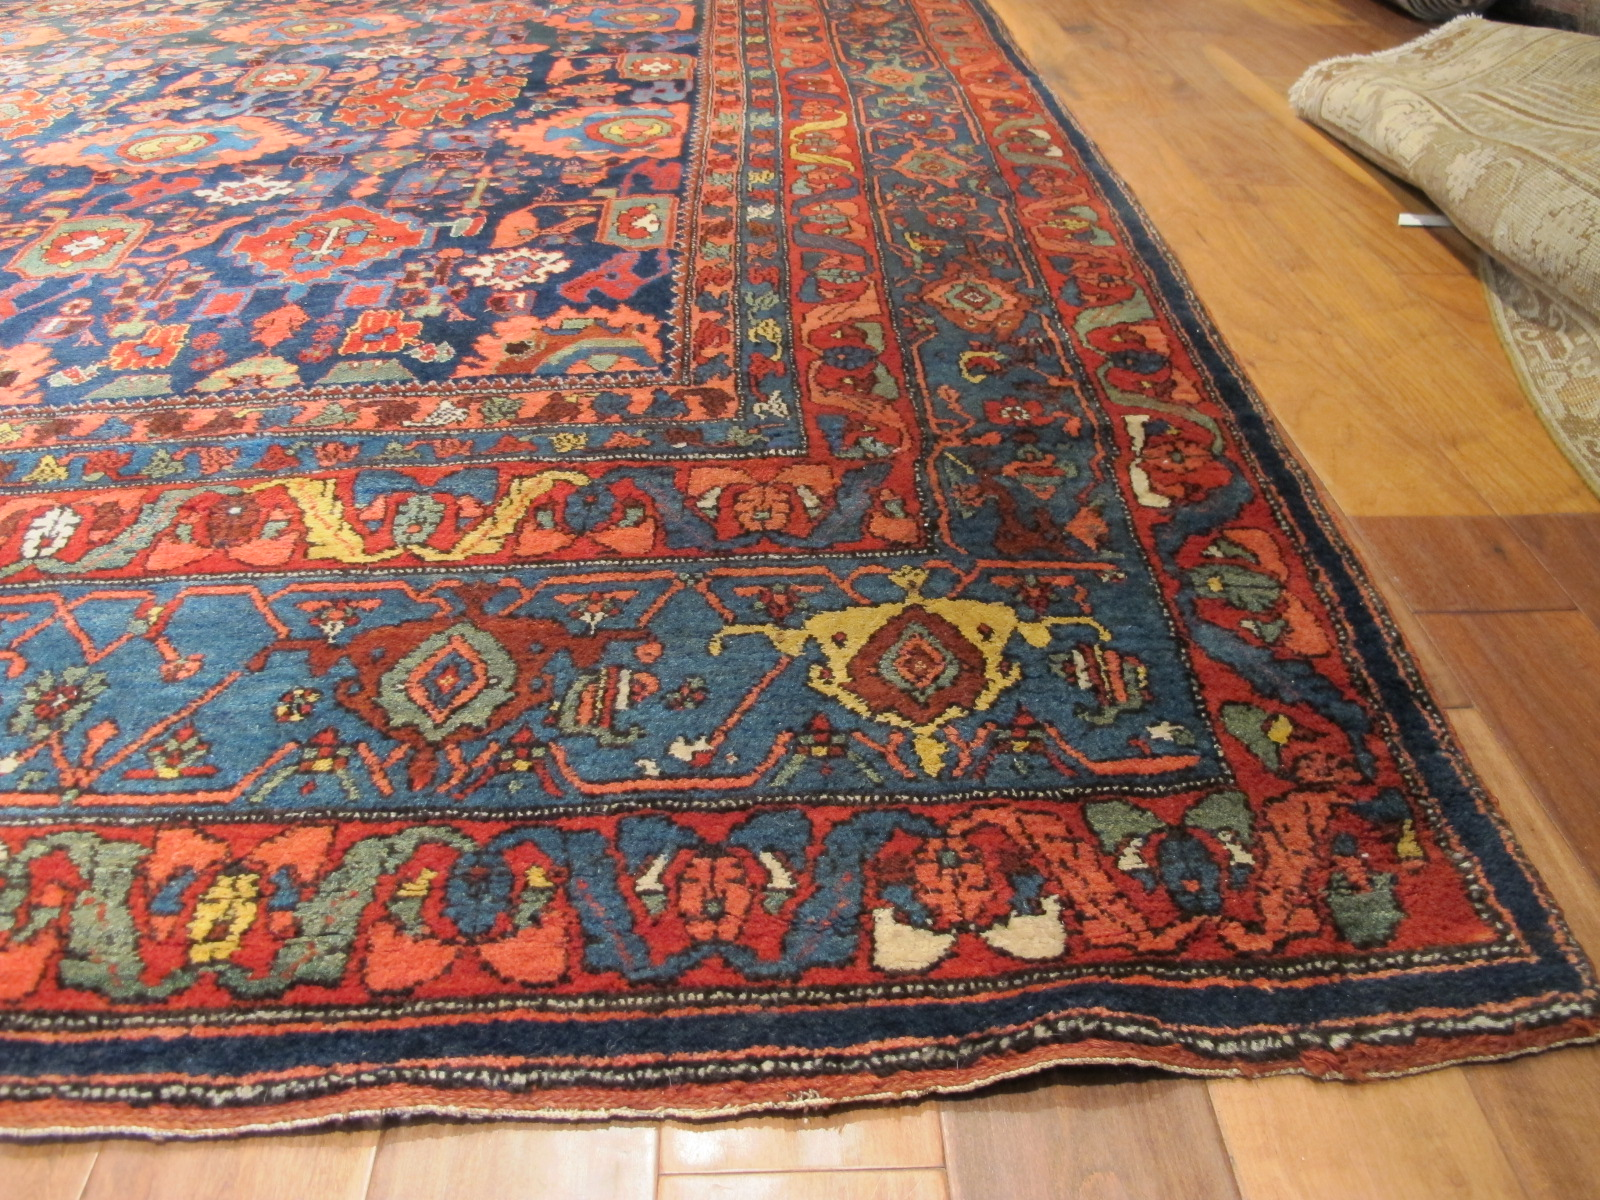 12478 Antique Persian Bidjar carpet 13,1 x 20 (2)